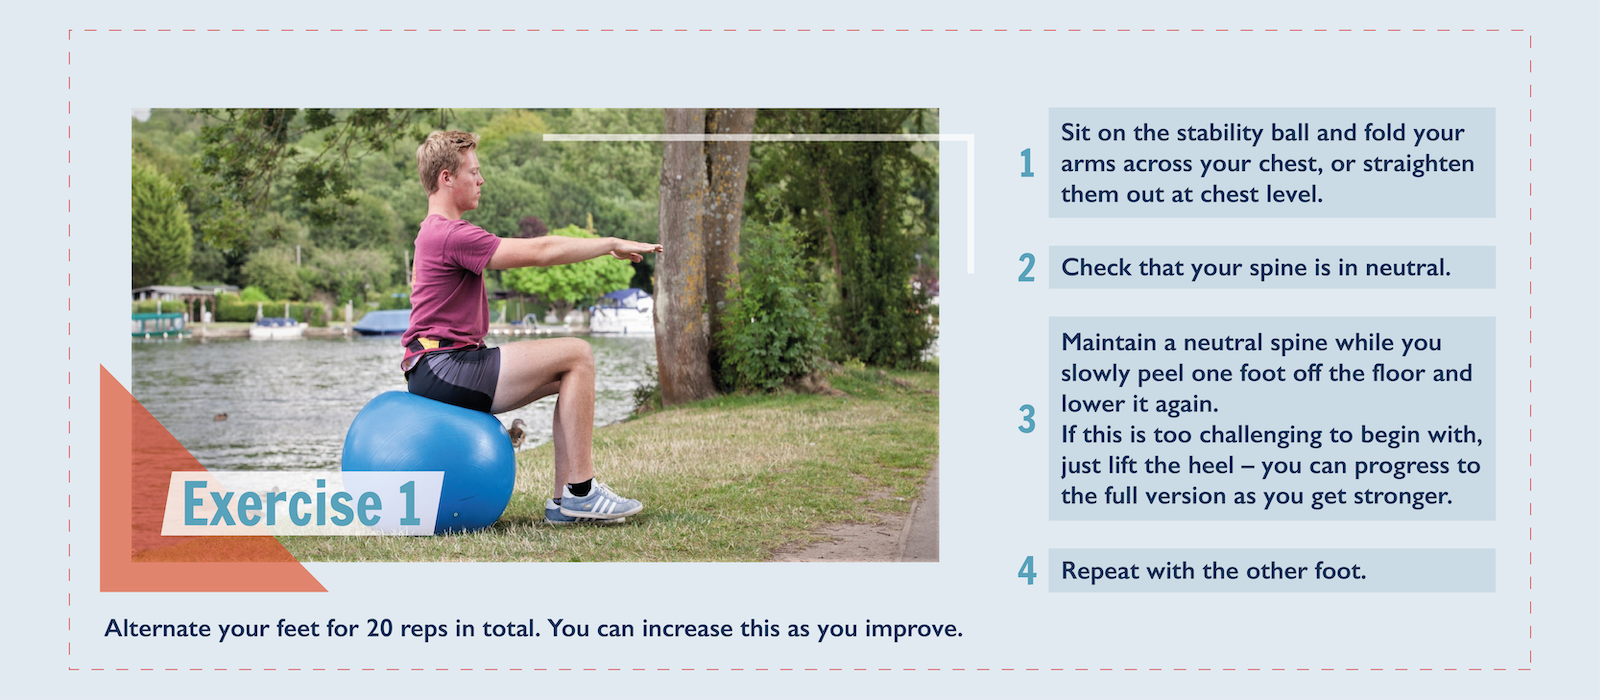 Exercise 1: A graphic explaining a pilates exercise. There is a photograph of a man sitting on an exercise ball. His point outwards horizontally, with the legs bent. One foot is touching the floor, and the other is slightly raised. Step 1: Sit on the stability ball and fold your arms across your chest, or straighten them out at chest level. Step 2: Check that your spine is in neutral. Step 3: Maintain a neutral spine while you slowly peel one foot off the floor and lower it again. If this is too challenging to begin with, just lift the heel – you can progress to the full version as you get stronger. Step 4: Repeat with the other foot. Alternate your feet for 20 reps in total. You can increase this as you improve.